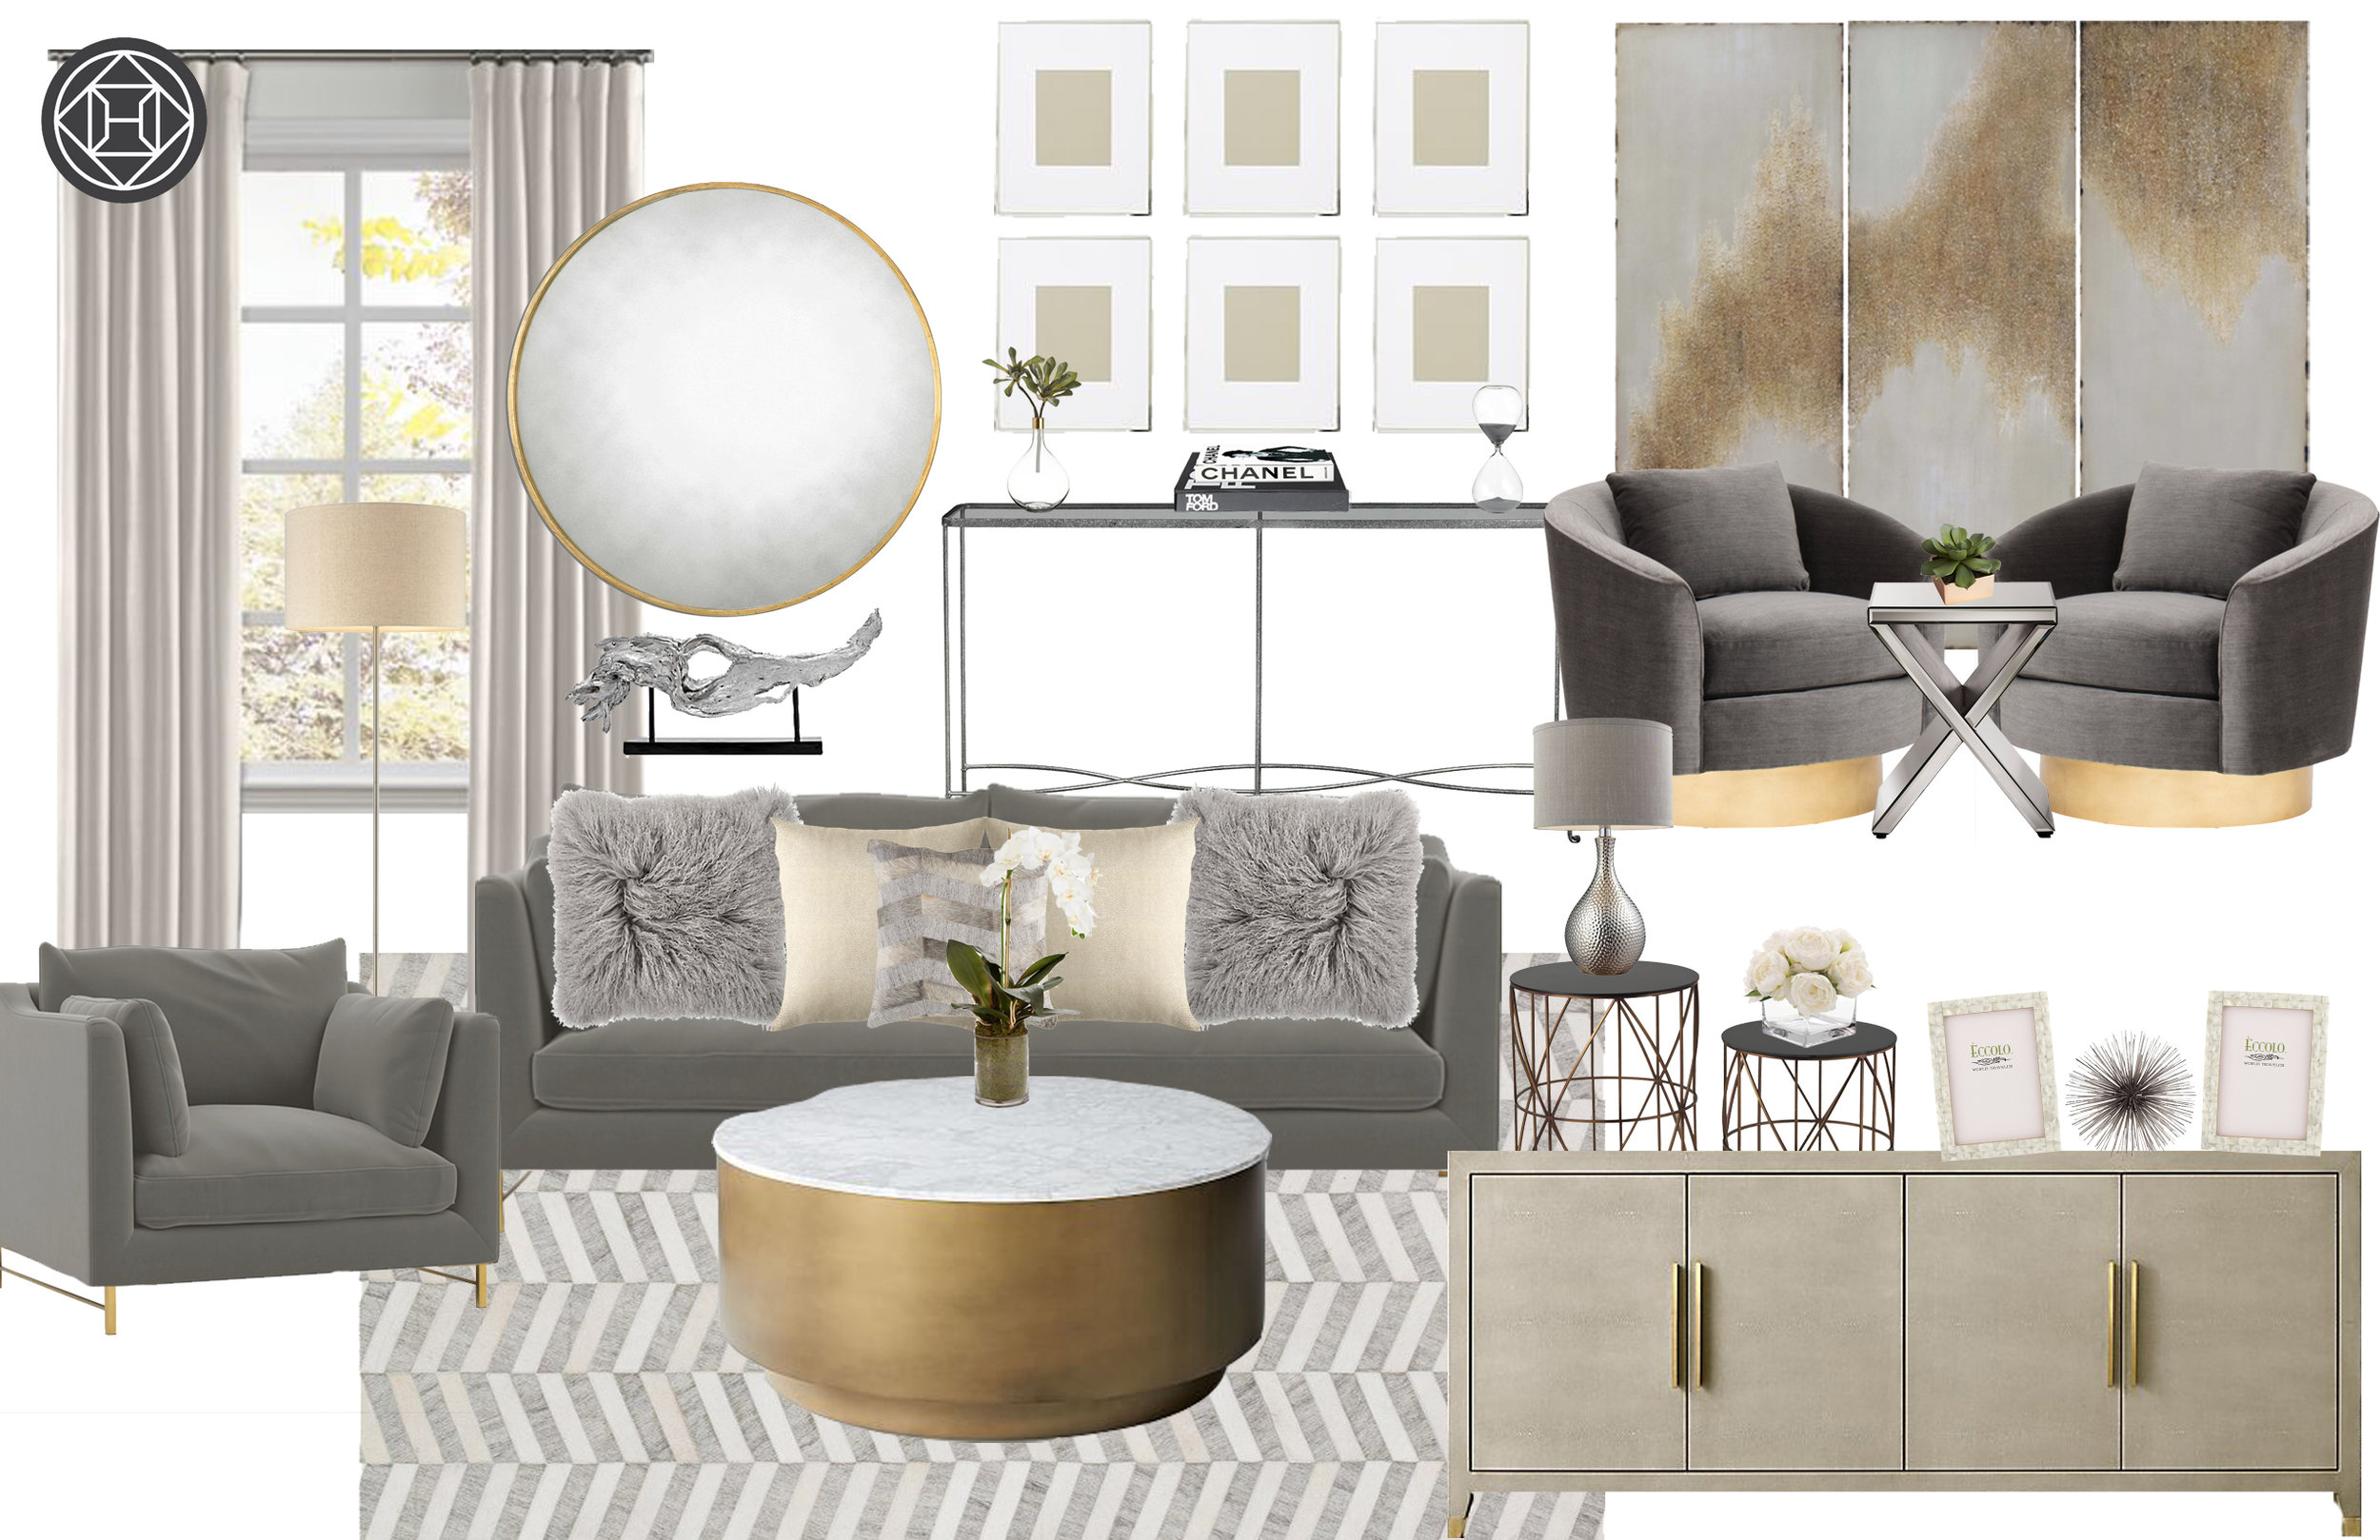 Havenly design contemporary glam living room with greys and mixed metals